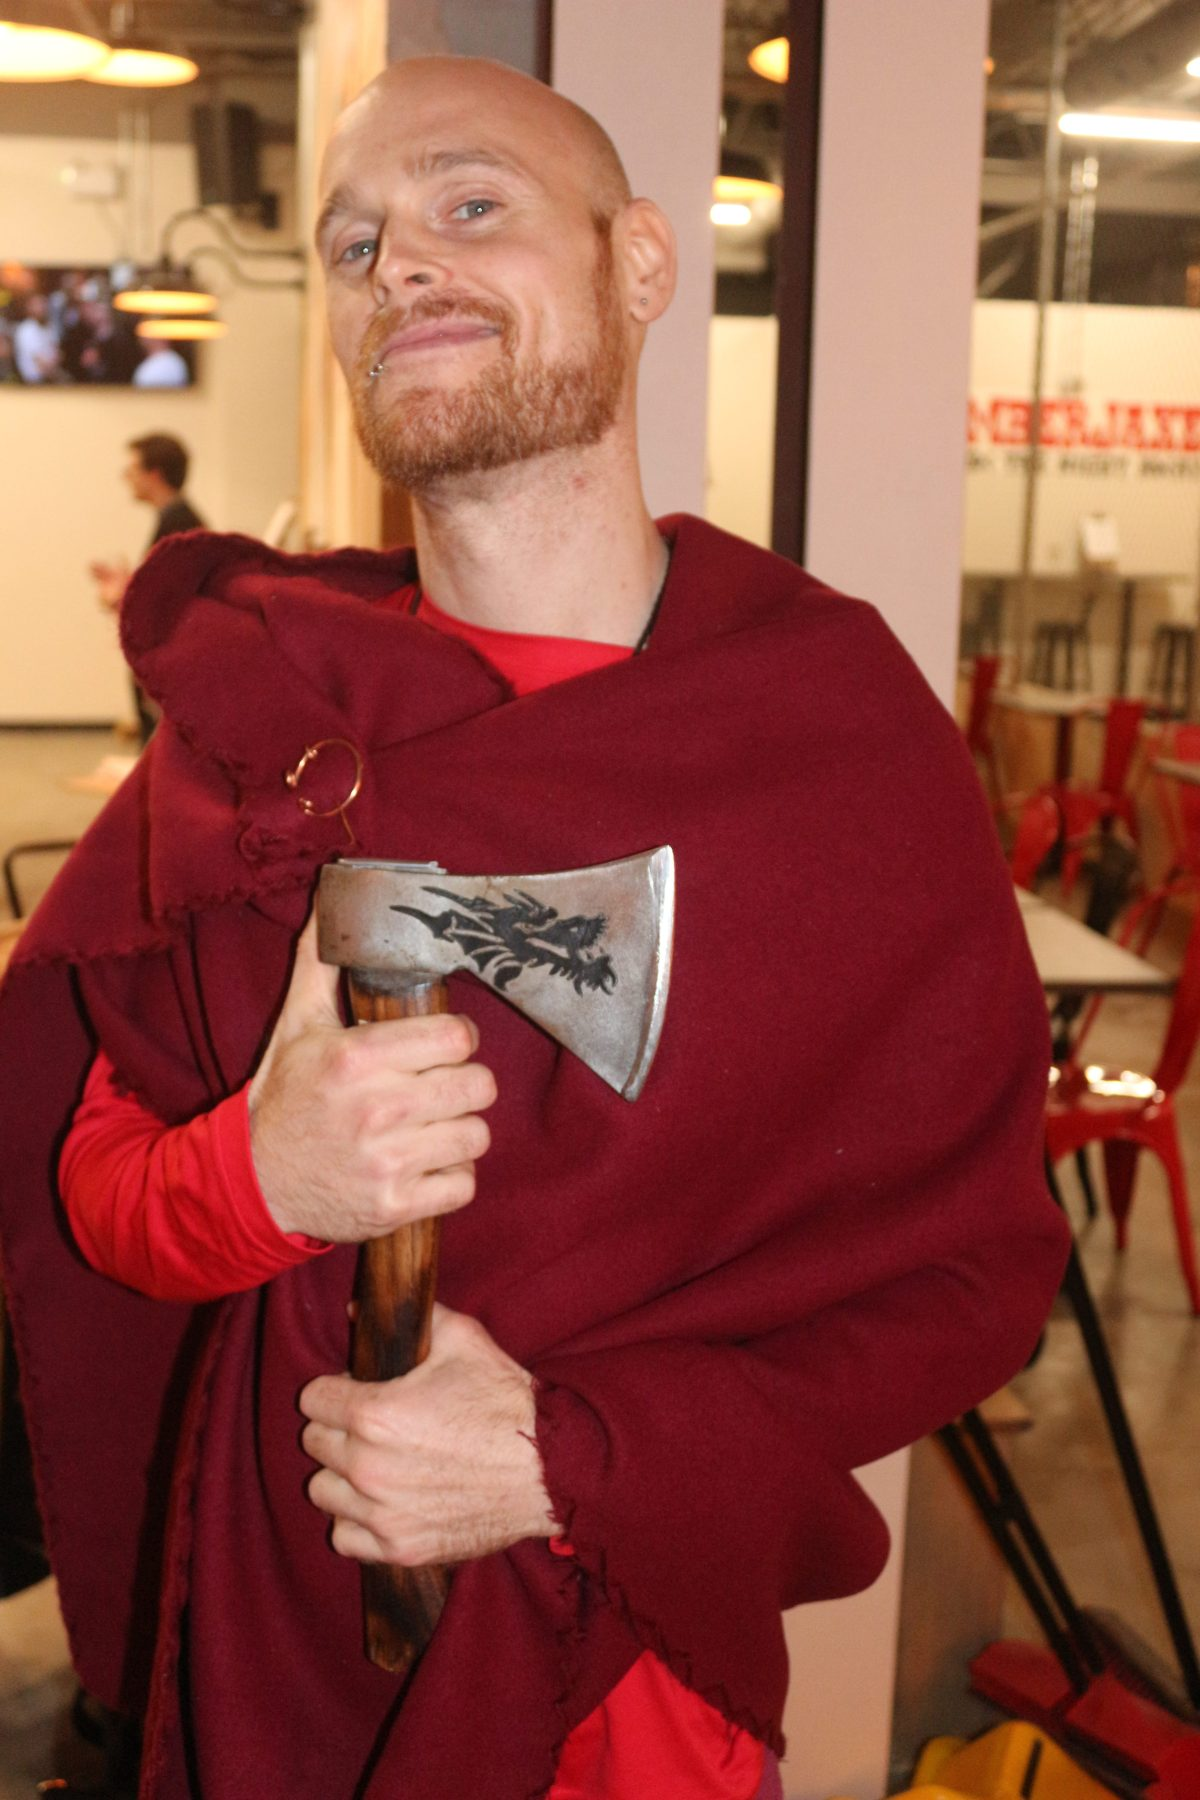 Sysafey Vennon, one of the staff at Lumberjaxe, poses with an axe.